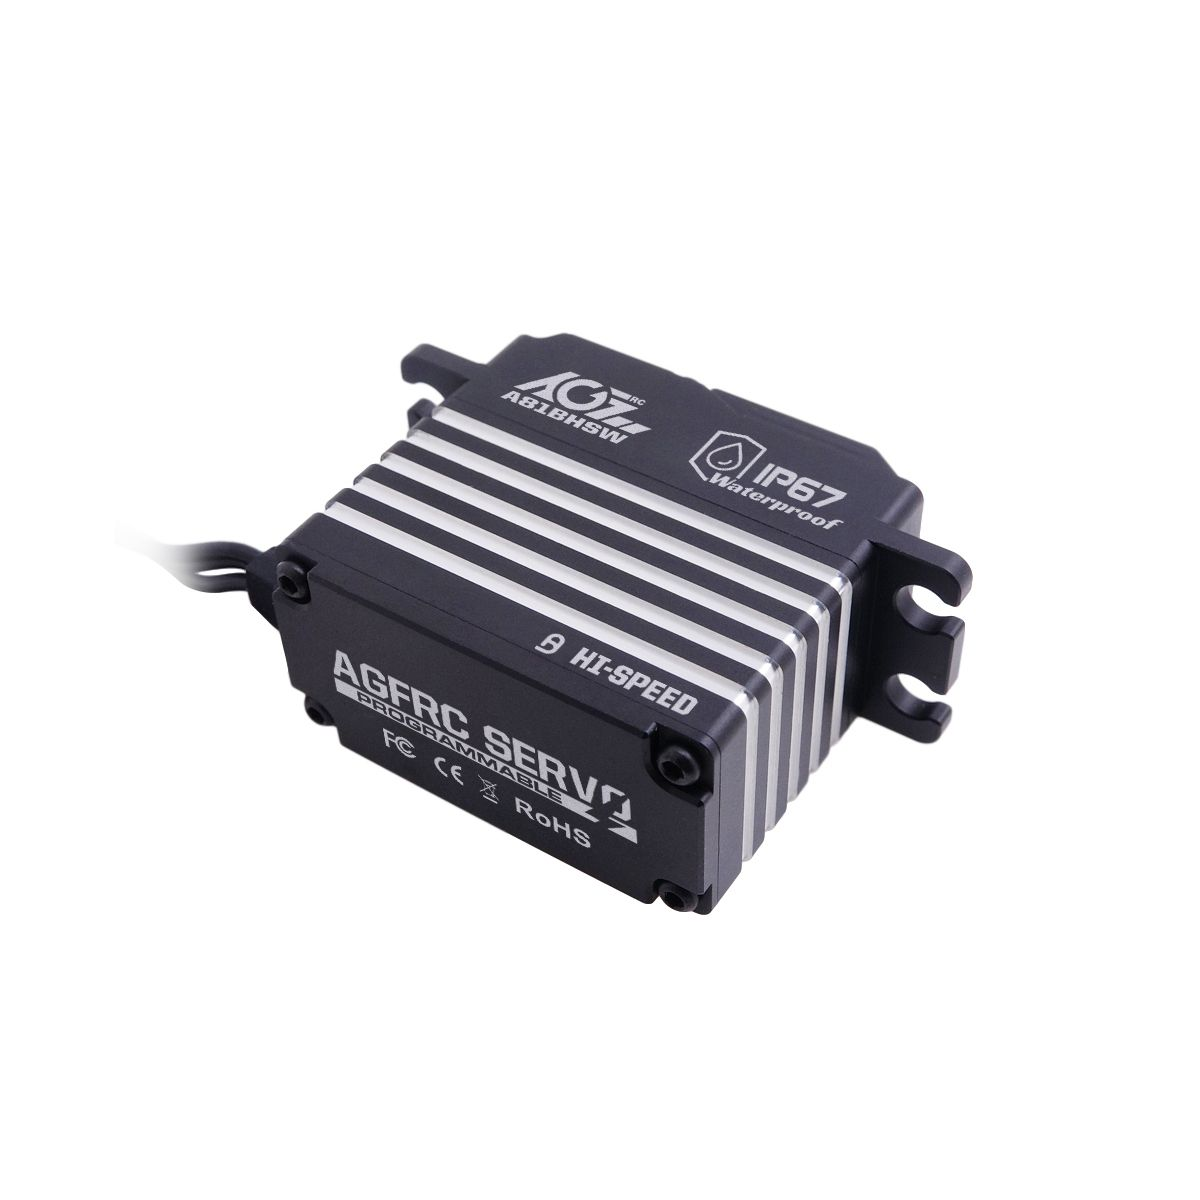 AGF RC A81BHSW 28KG 0.097Sec STD Size Steel Gear Programmable Brushless Magnetic Waterproof Extra Strong Servo For Airplane Robot Arm